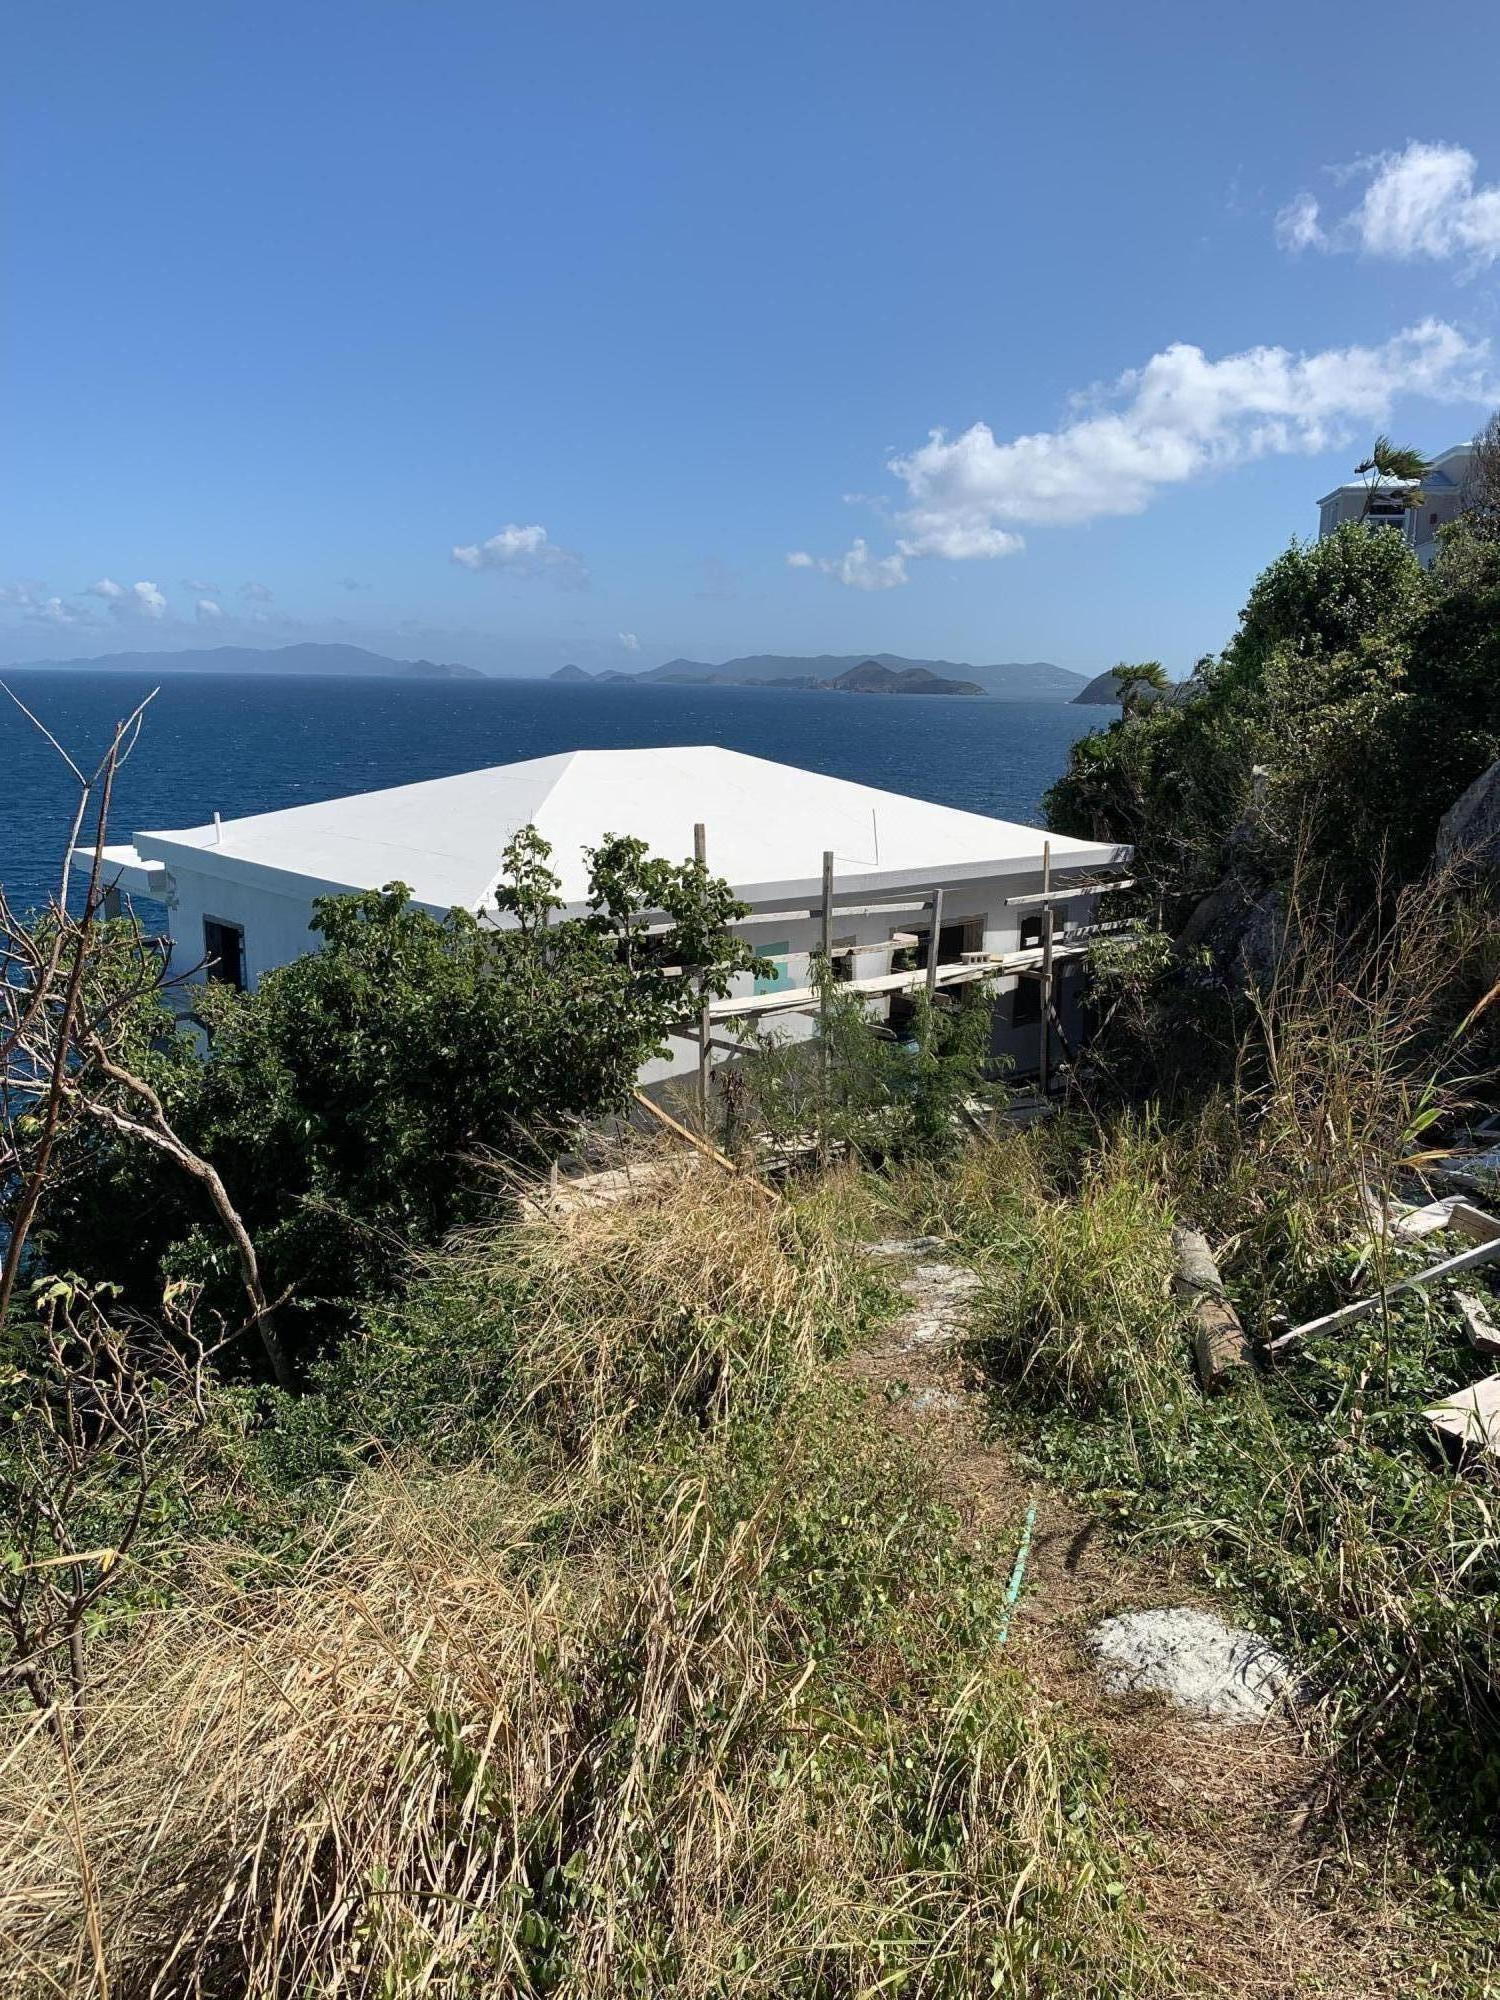 Single Family Home for Sale at 10-2-28 Peterborg GNS 10-2-28 Peterborg GNS St Thomas, Virgin Islands 00802 United States Virgin Islands